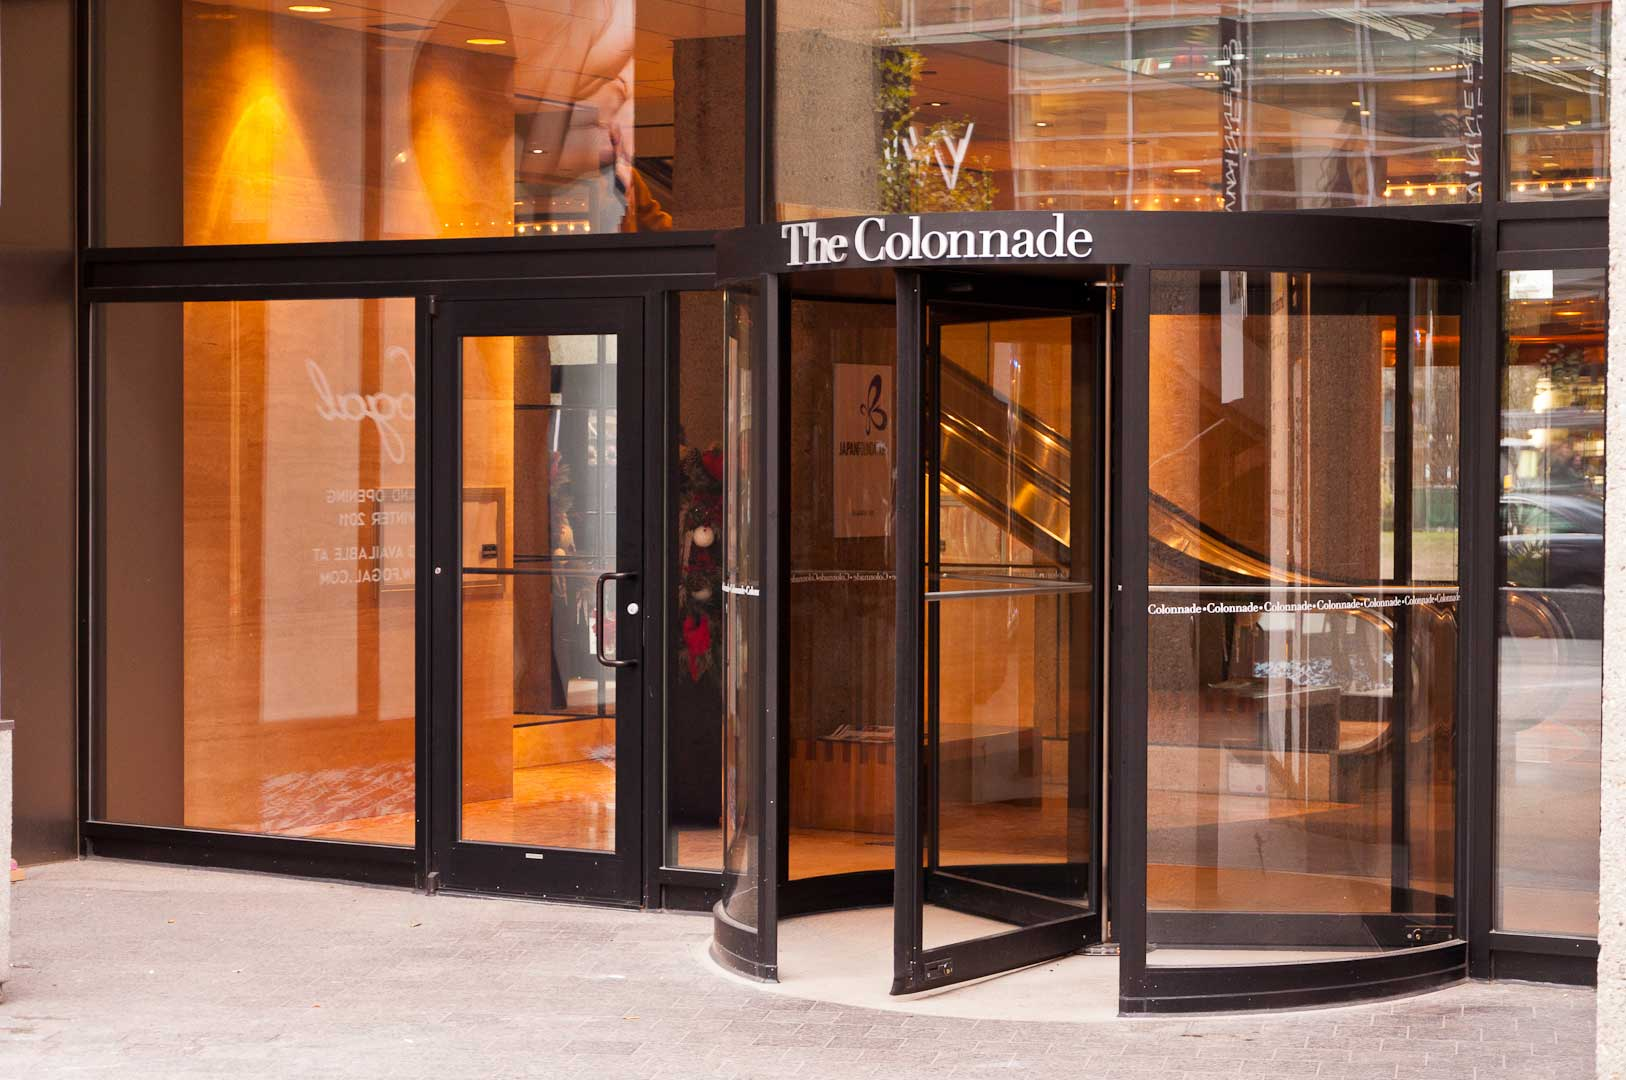 Right Exterior 131 Bloor St Revolving Door Entrance Maintained by Explore1